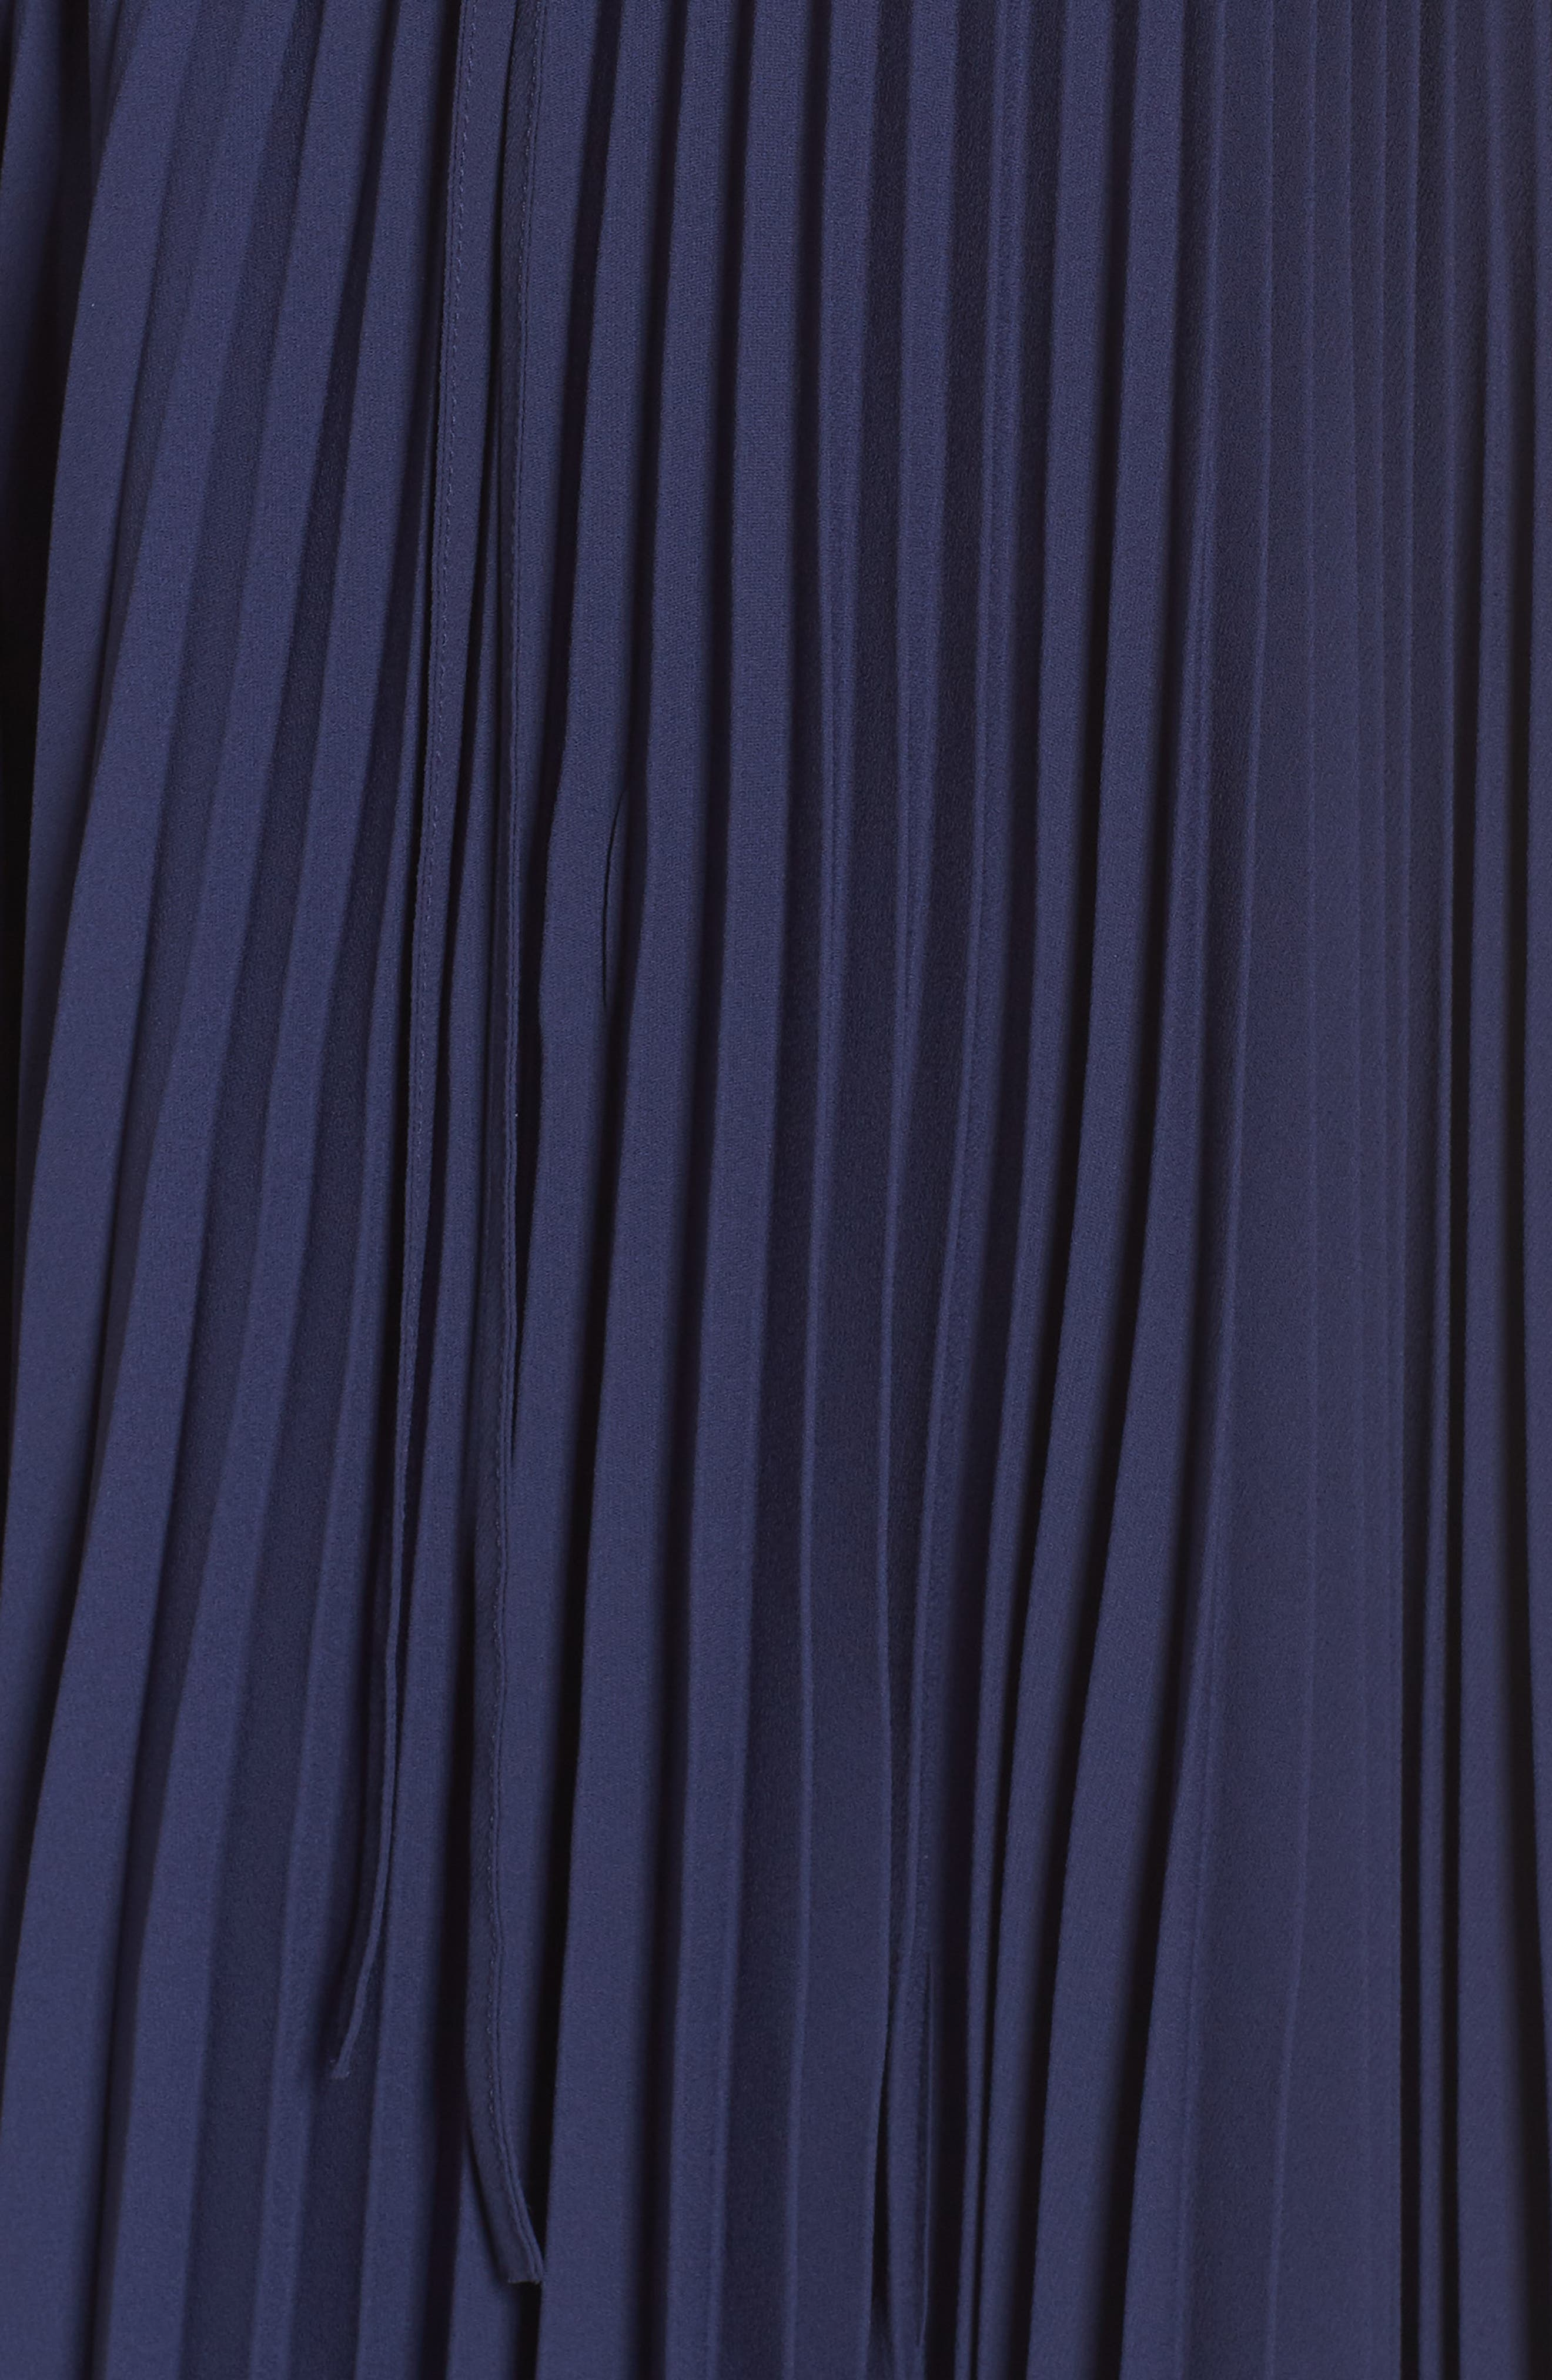 Elise Off the Shoulder Pleated Georgette Dress,                             Alternate thumbnail 6, color,                             NAVY W/ SELF PIPING